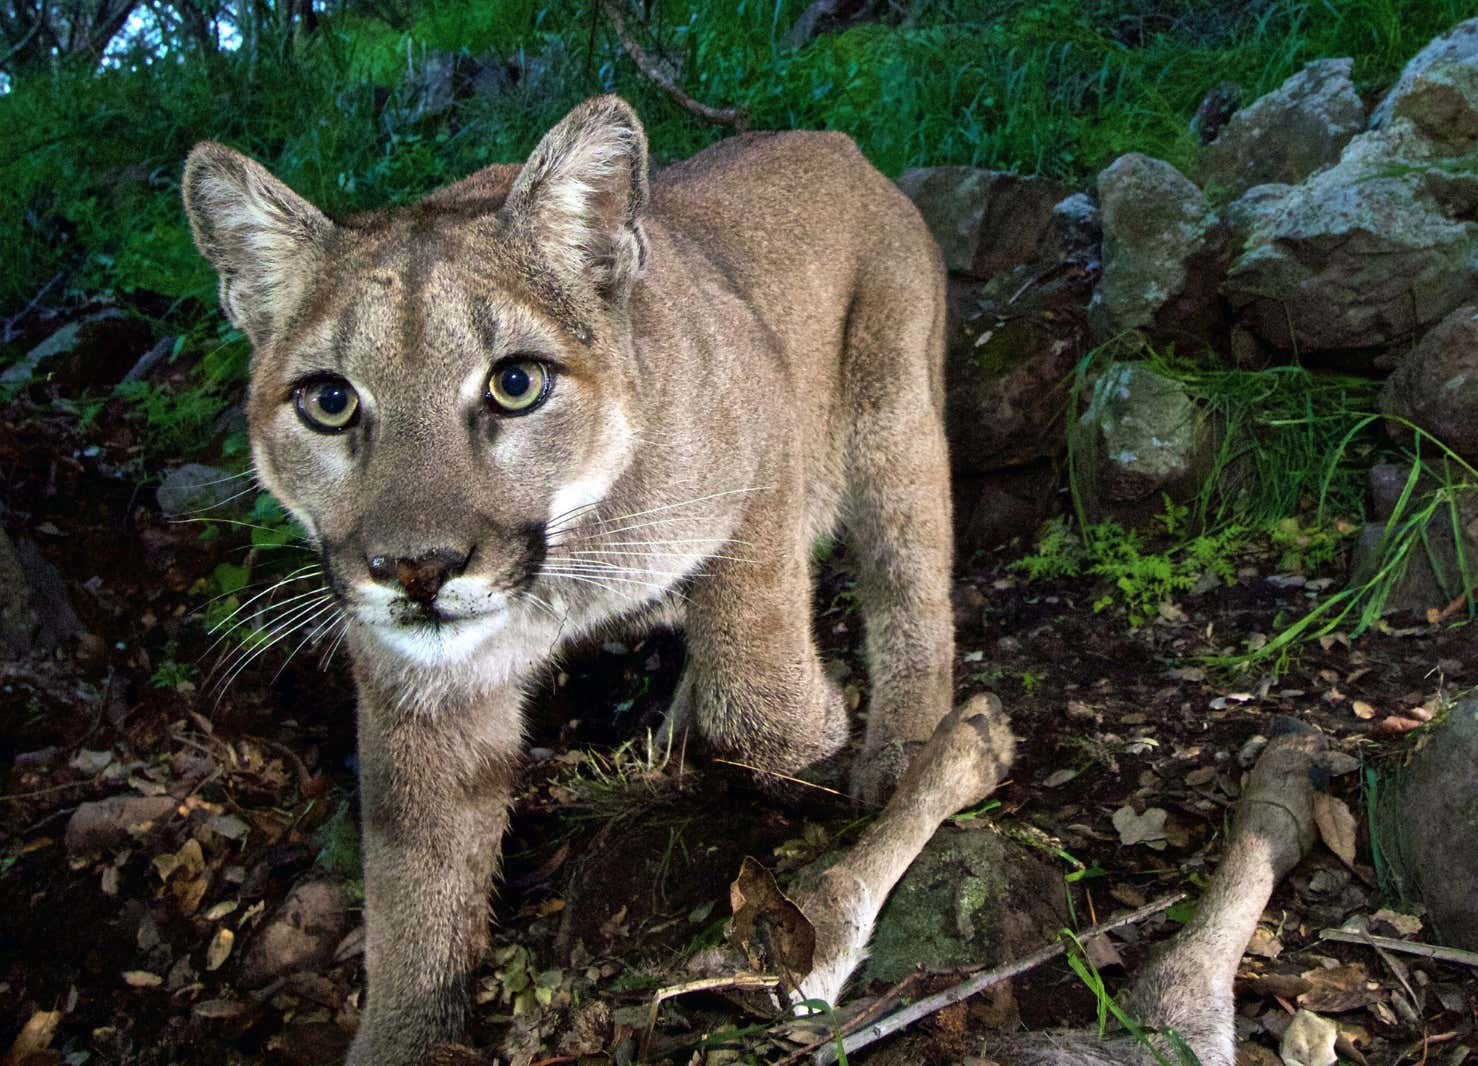 A Jogger Fought Off And Killed A Mountain Lion While Out